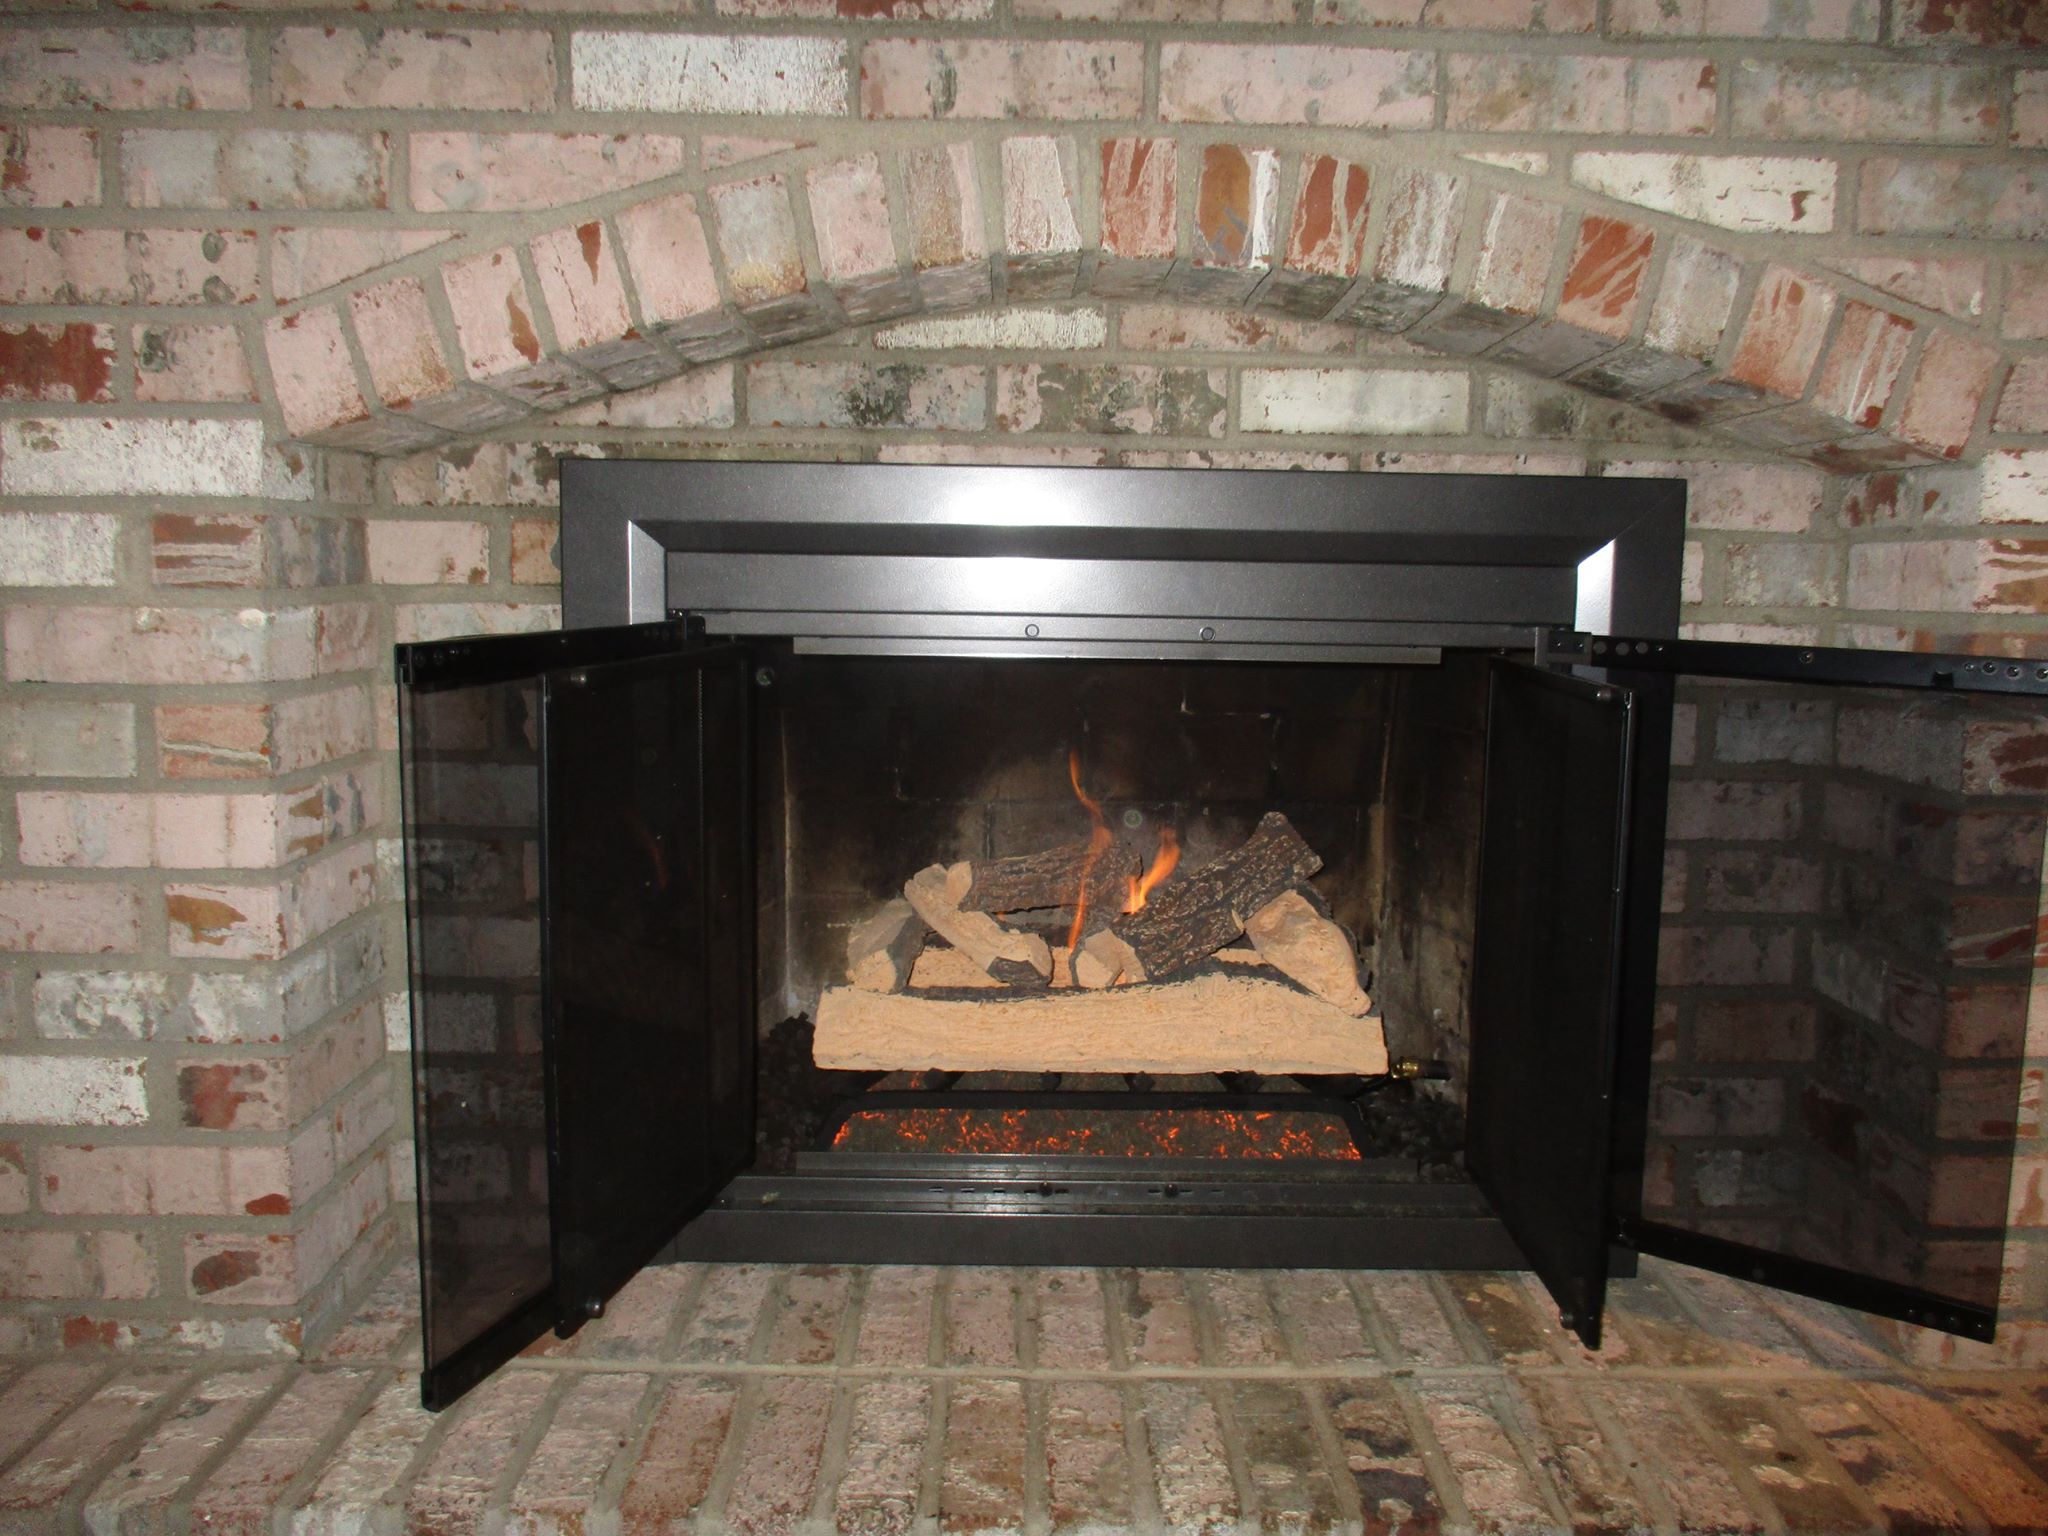 Fireplace Grills Gas Log Installation – Before & After Photos